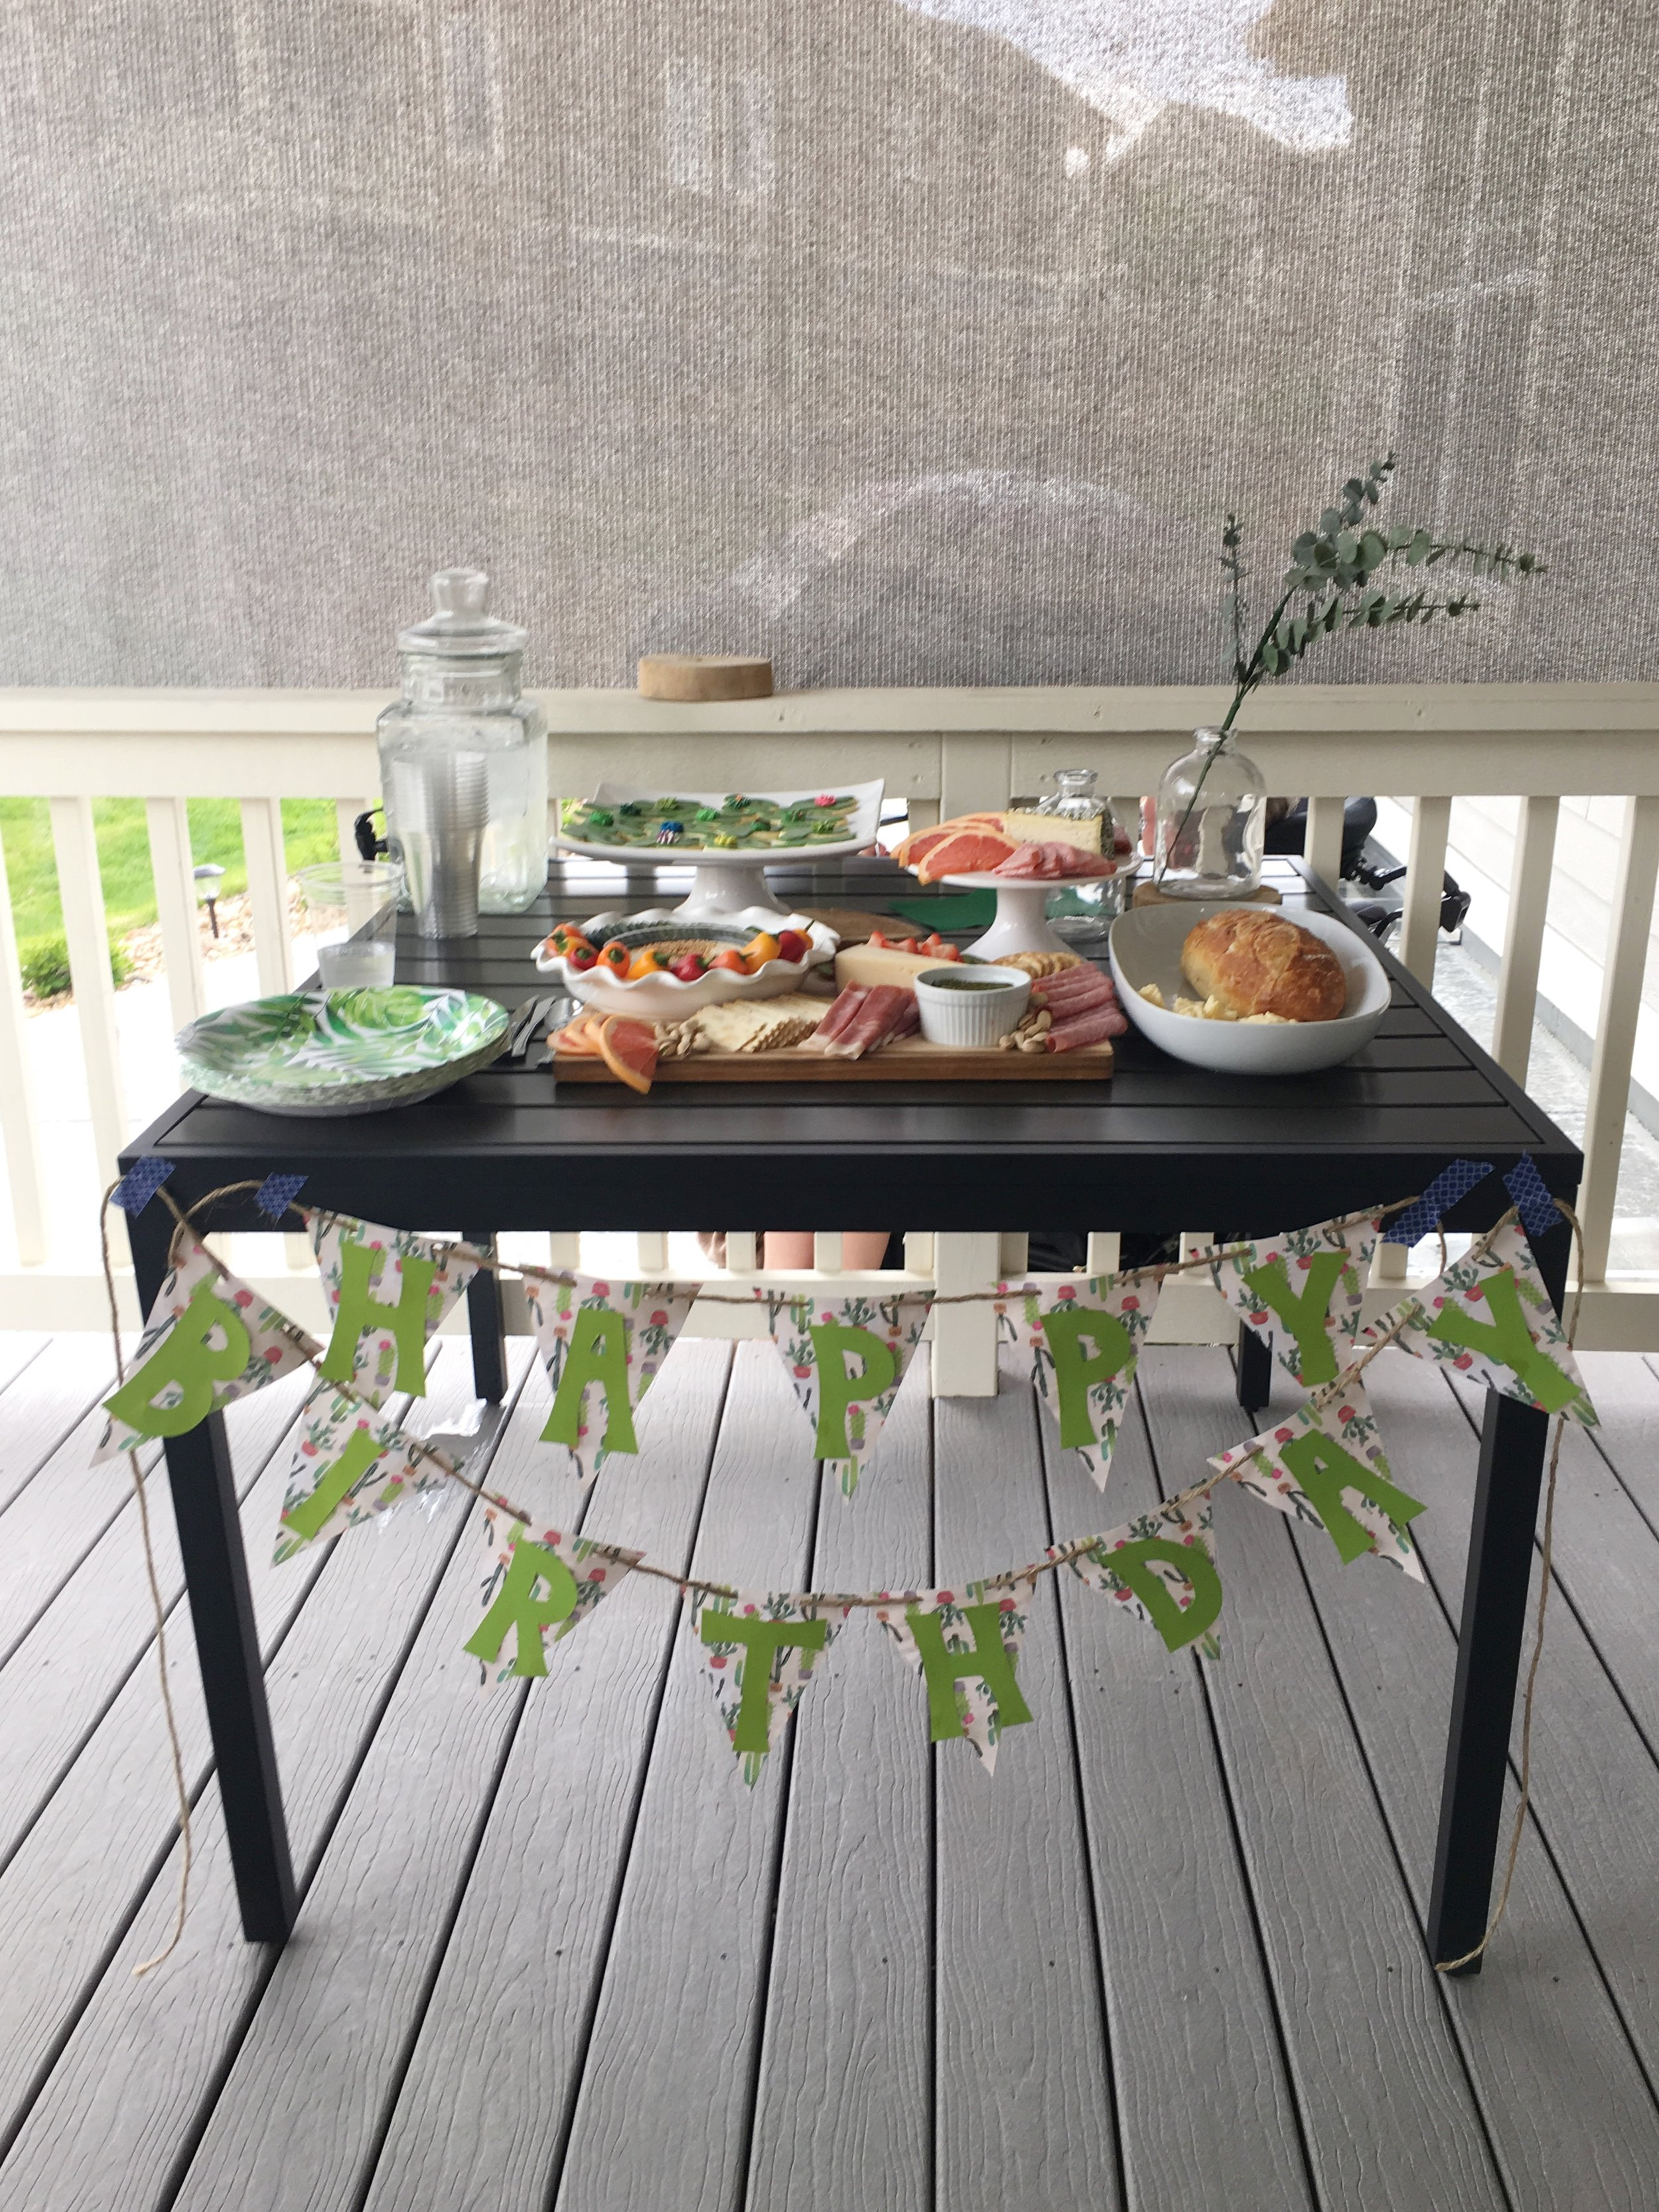 Table setup for birthday party; grazing board & sugar cookies